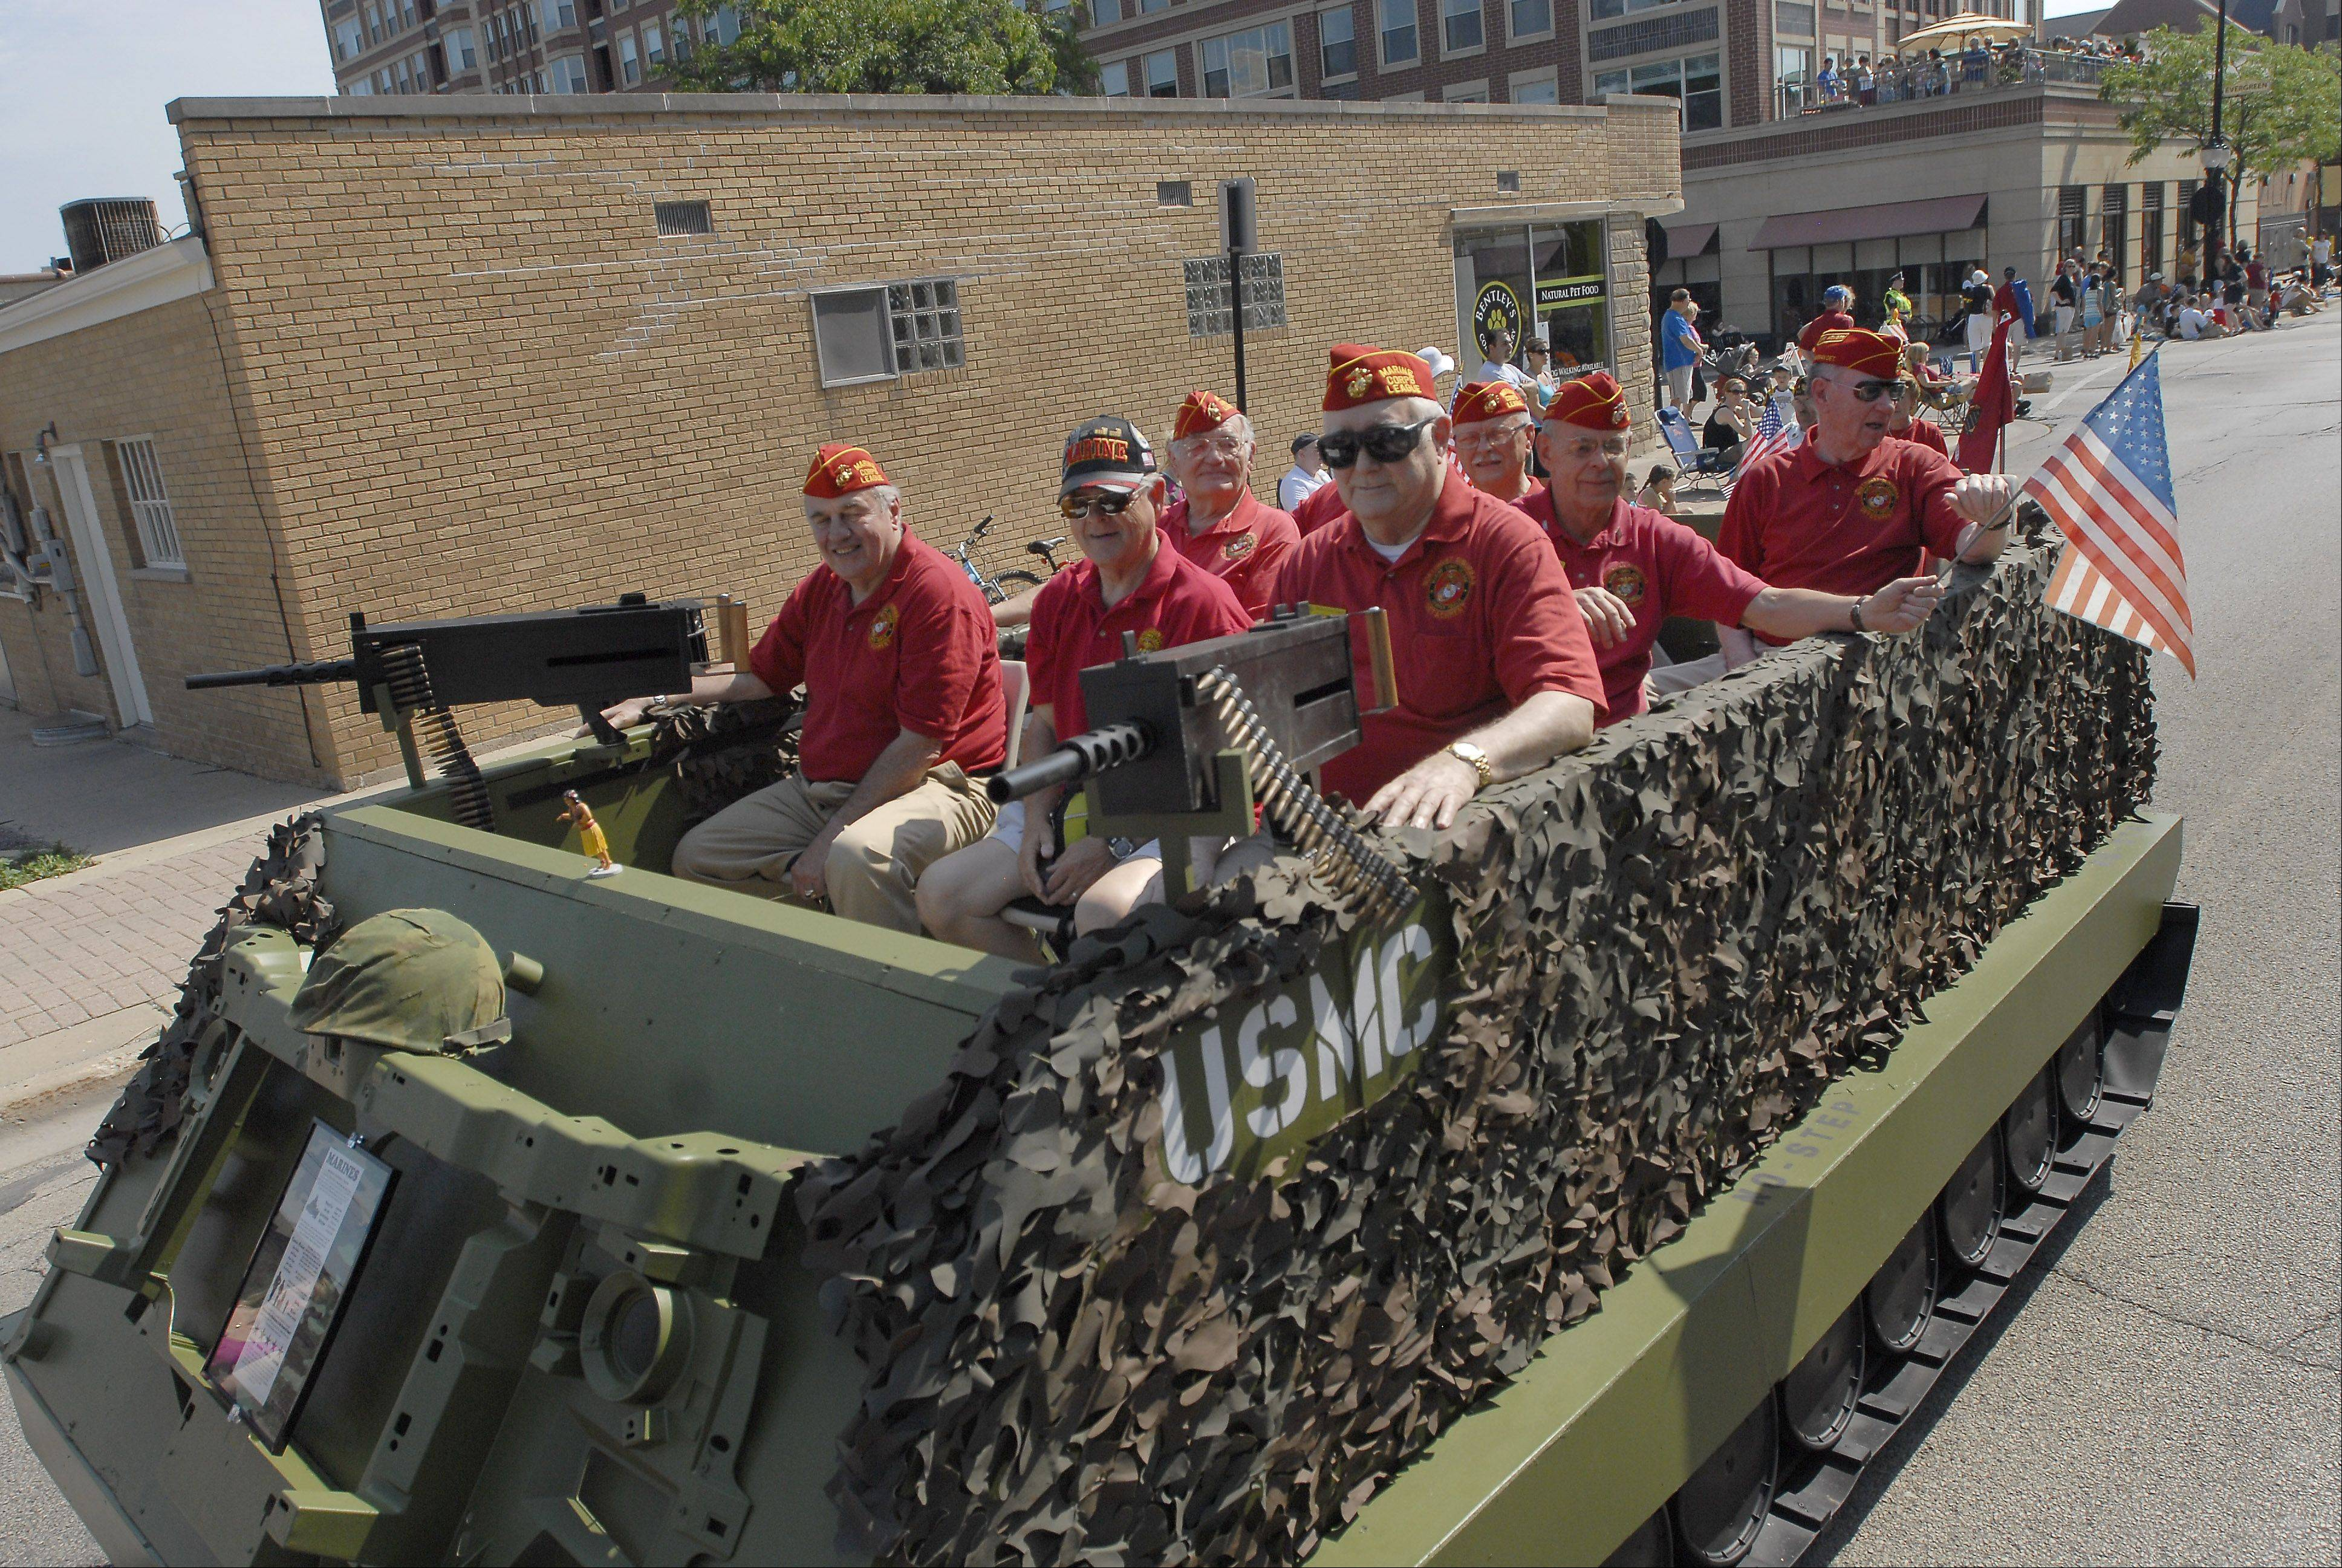 Members of the Marine Corps League ride in the Memorial Day parade in Monday in Arlington Heights.